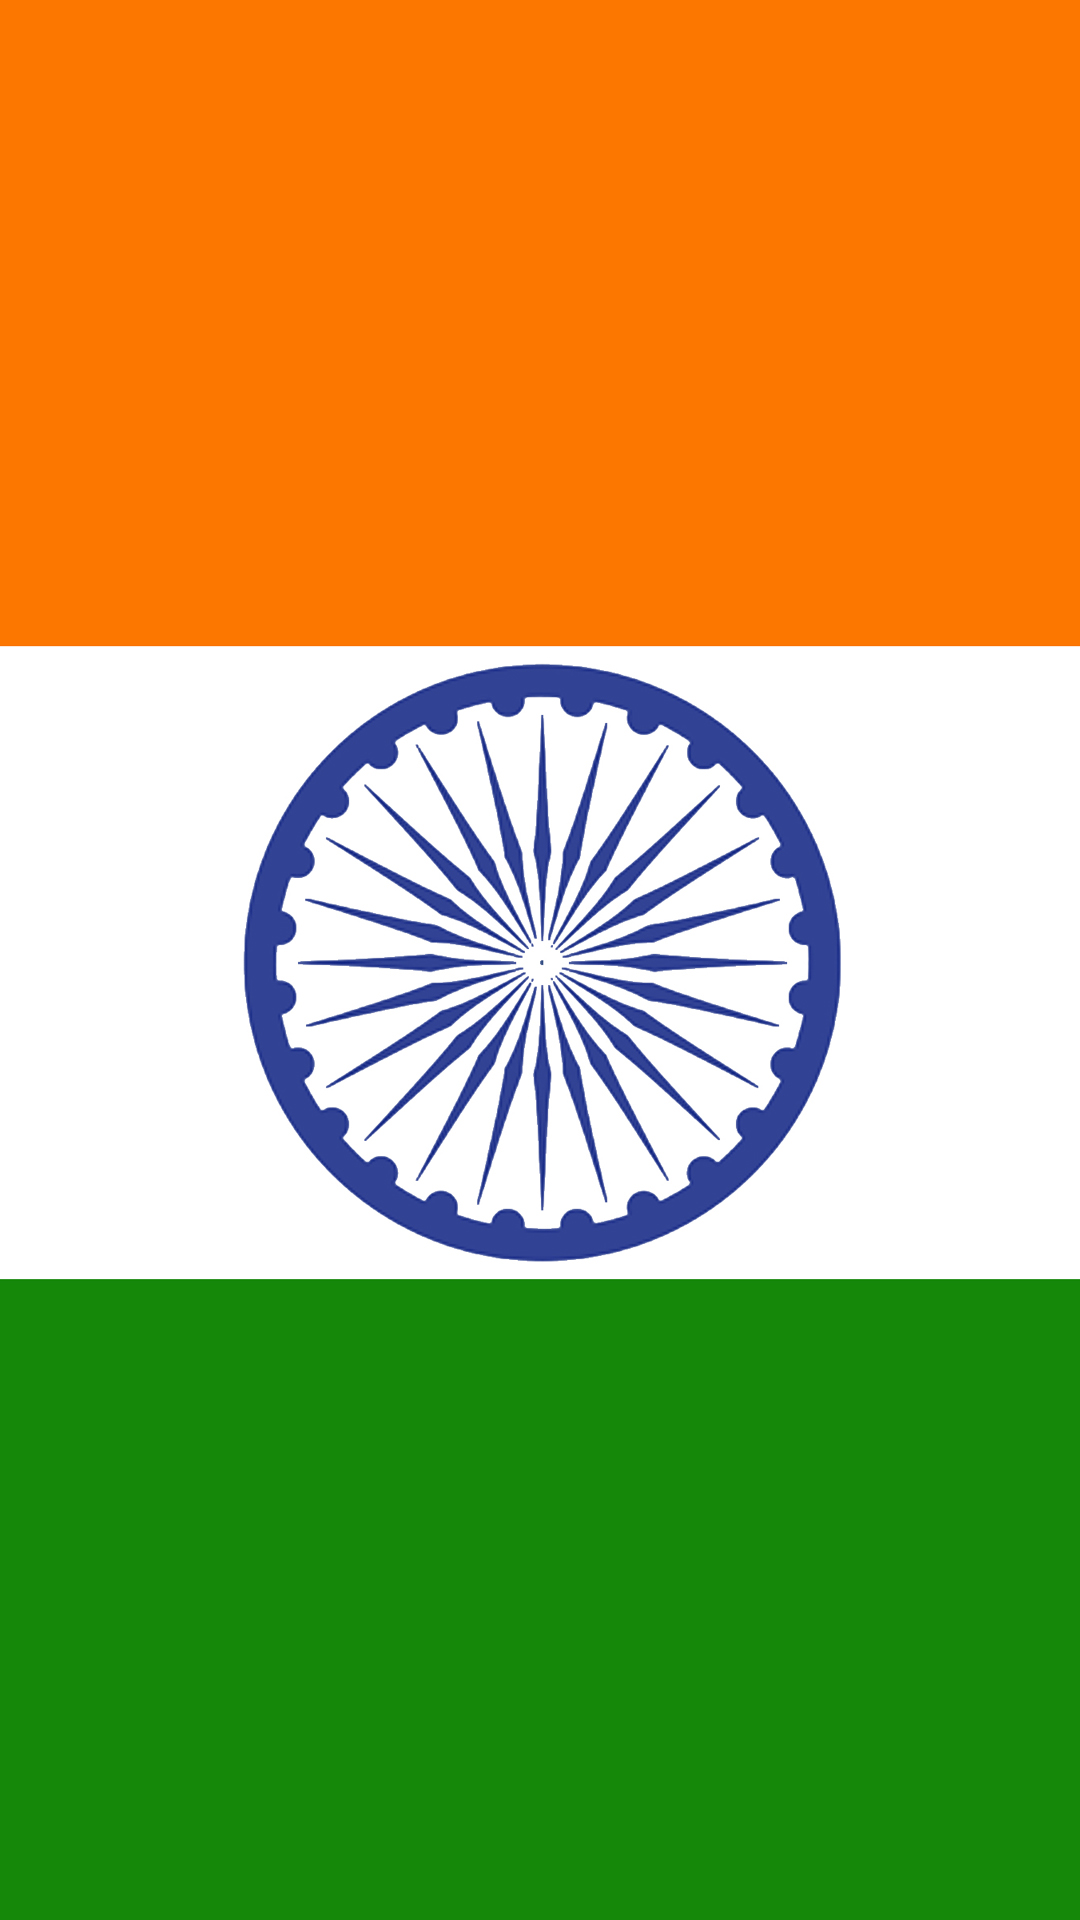 India flag for mobile phone wallpaper 01 of 17 pictures - Indian flag hd wallpaper for android ...